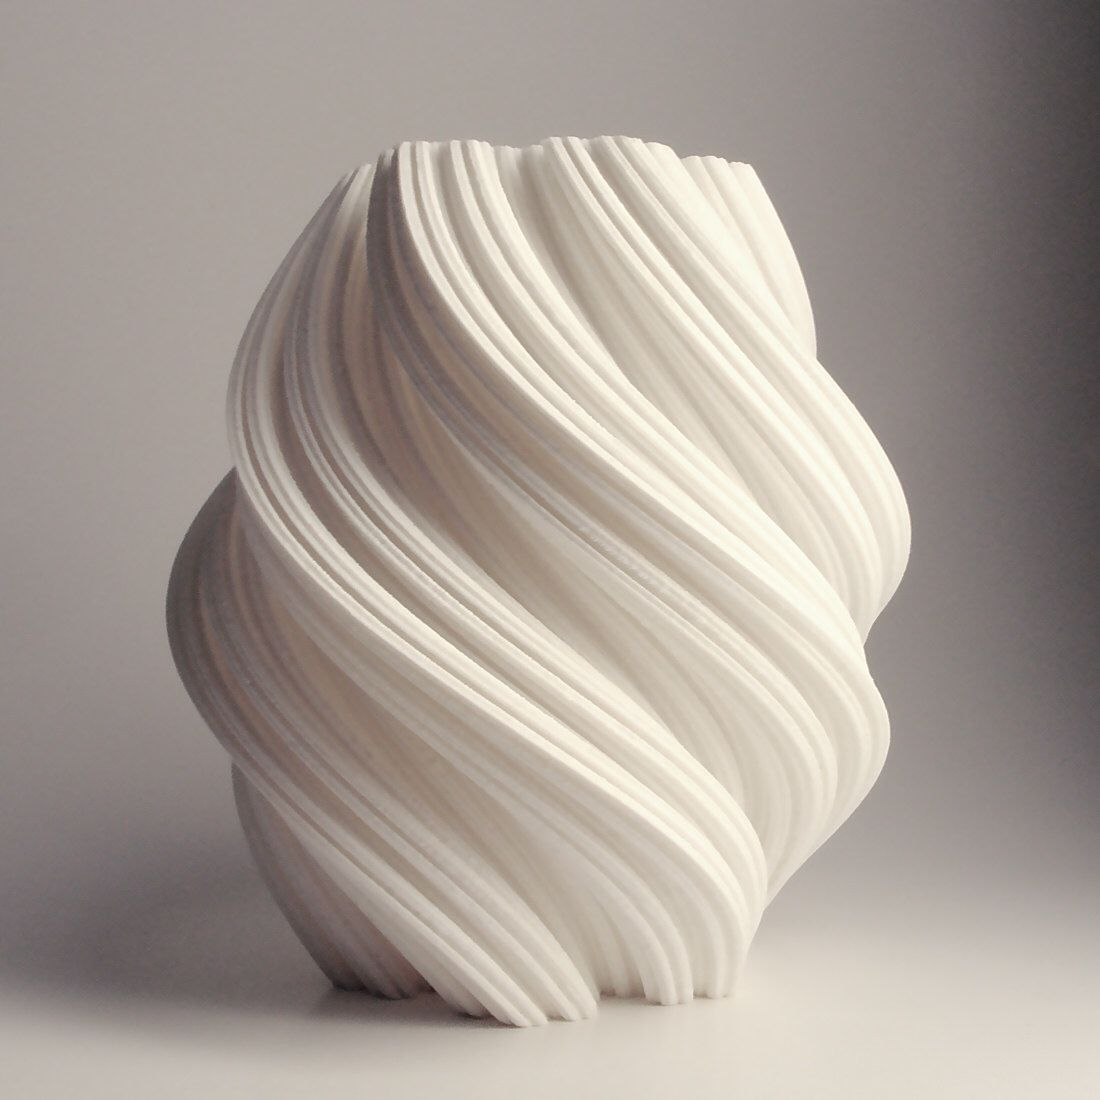 Check out this amazing statement 3d printed vase by meshcloud on check out this amazing statement 3d printed vase by meshcloud on etsy reviewsmspy